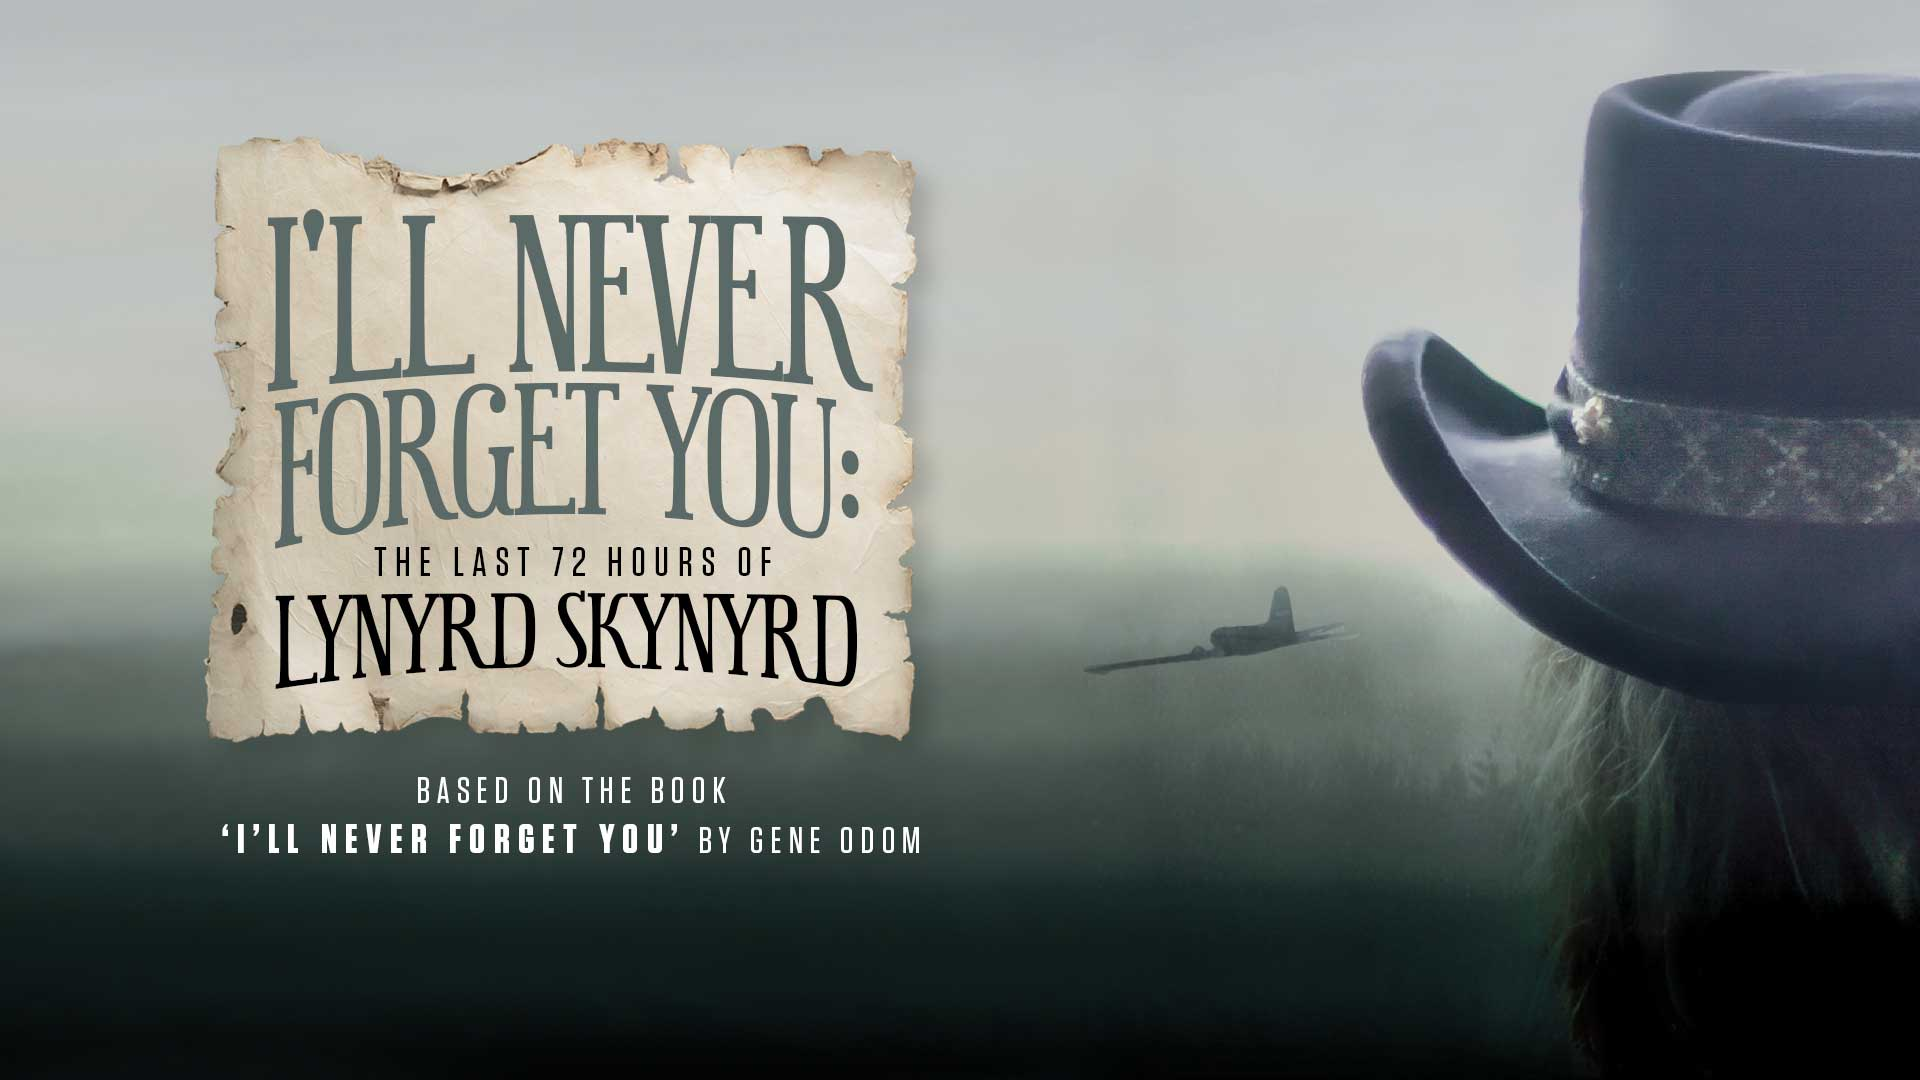 I'll Never Forget You: The Last 72 Hours Of Lynyrd Skynyrd